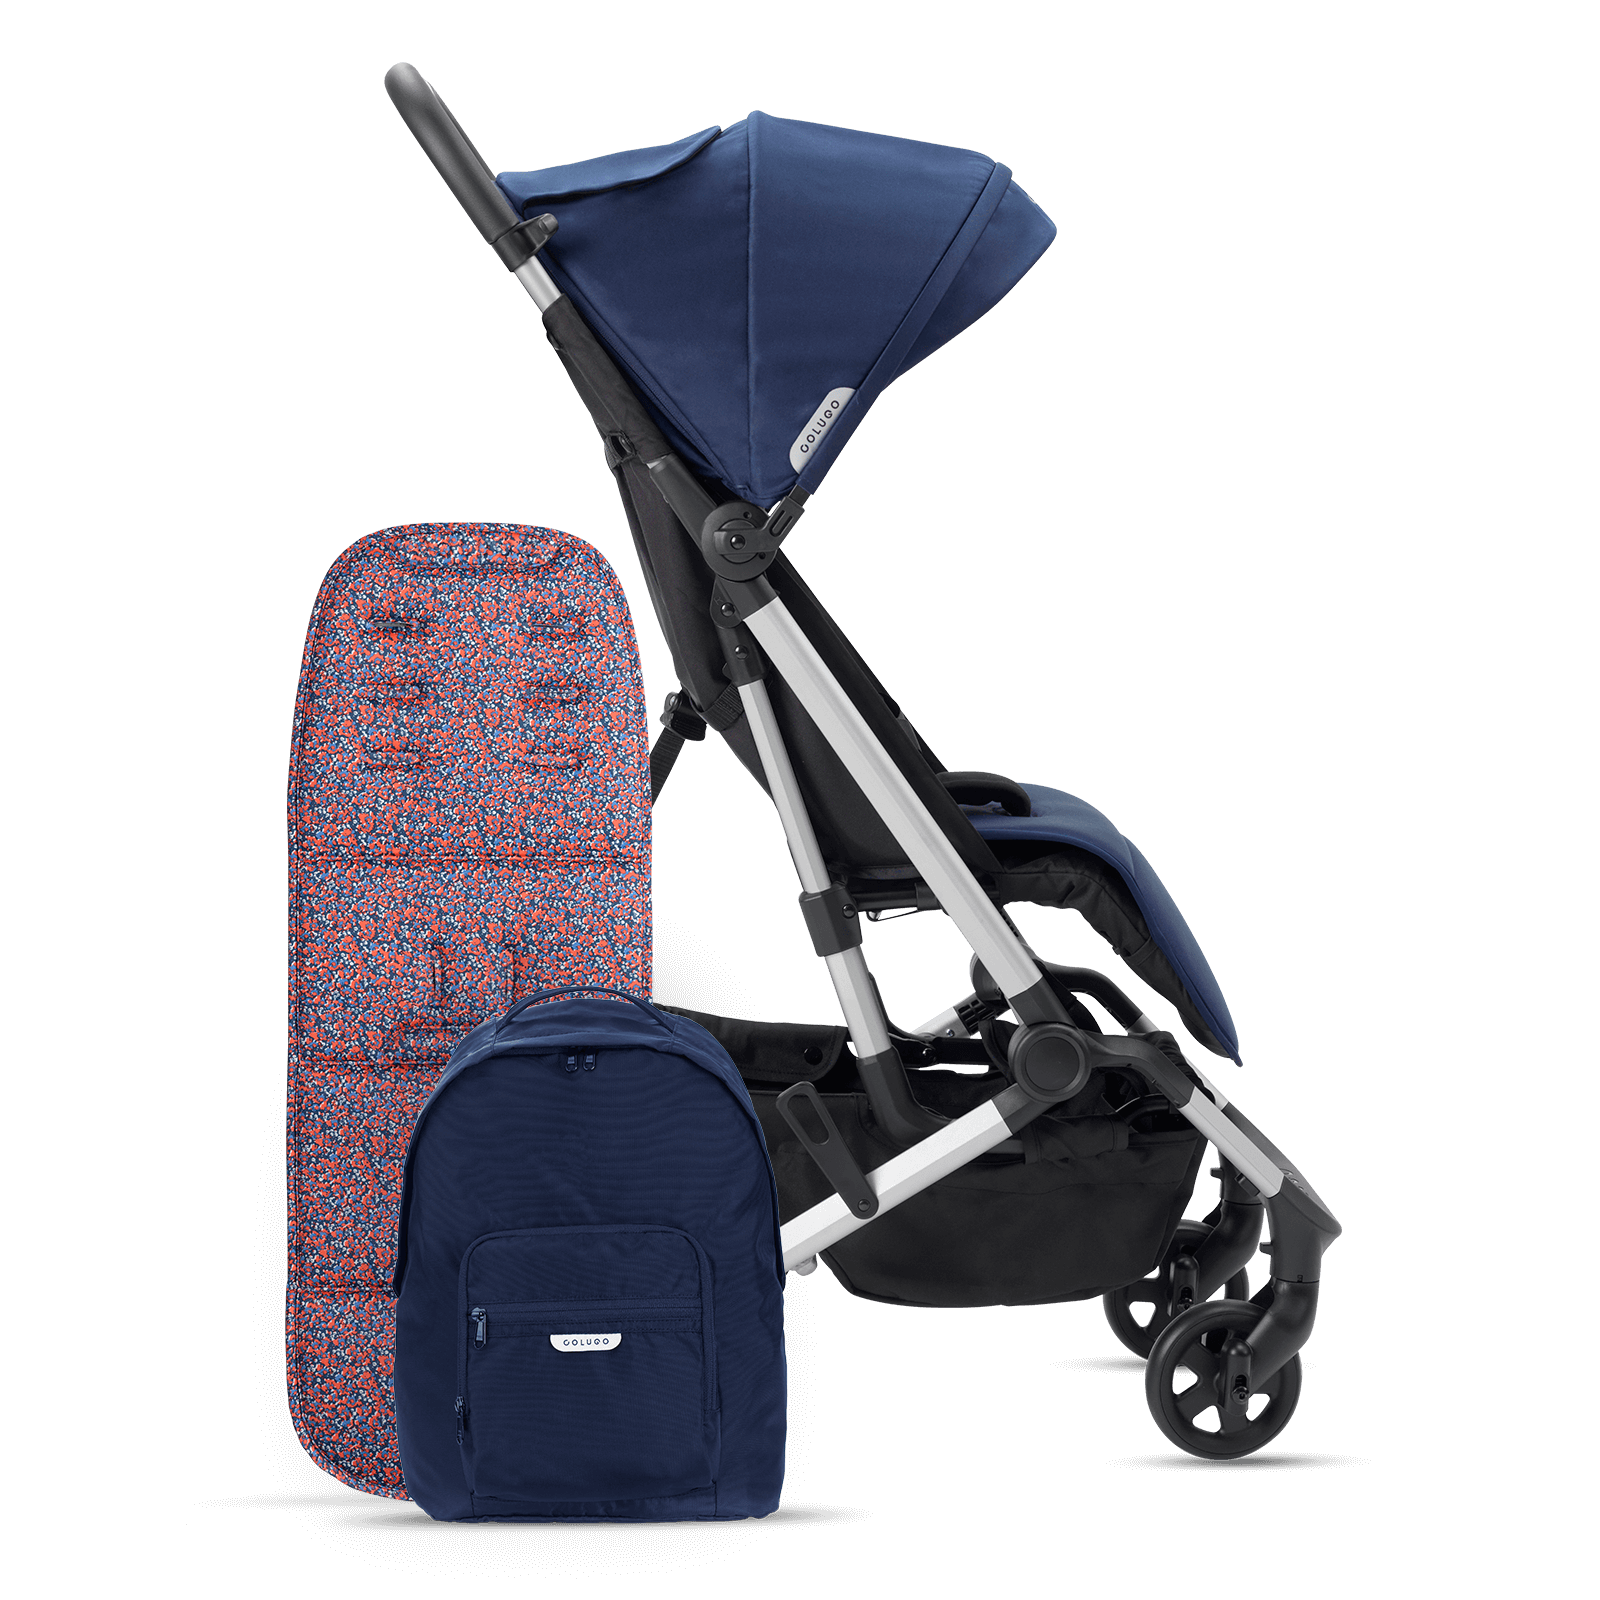 The Perfect Bundle Colugo Compact travel stroller